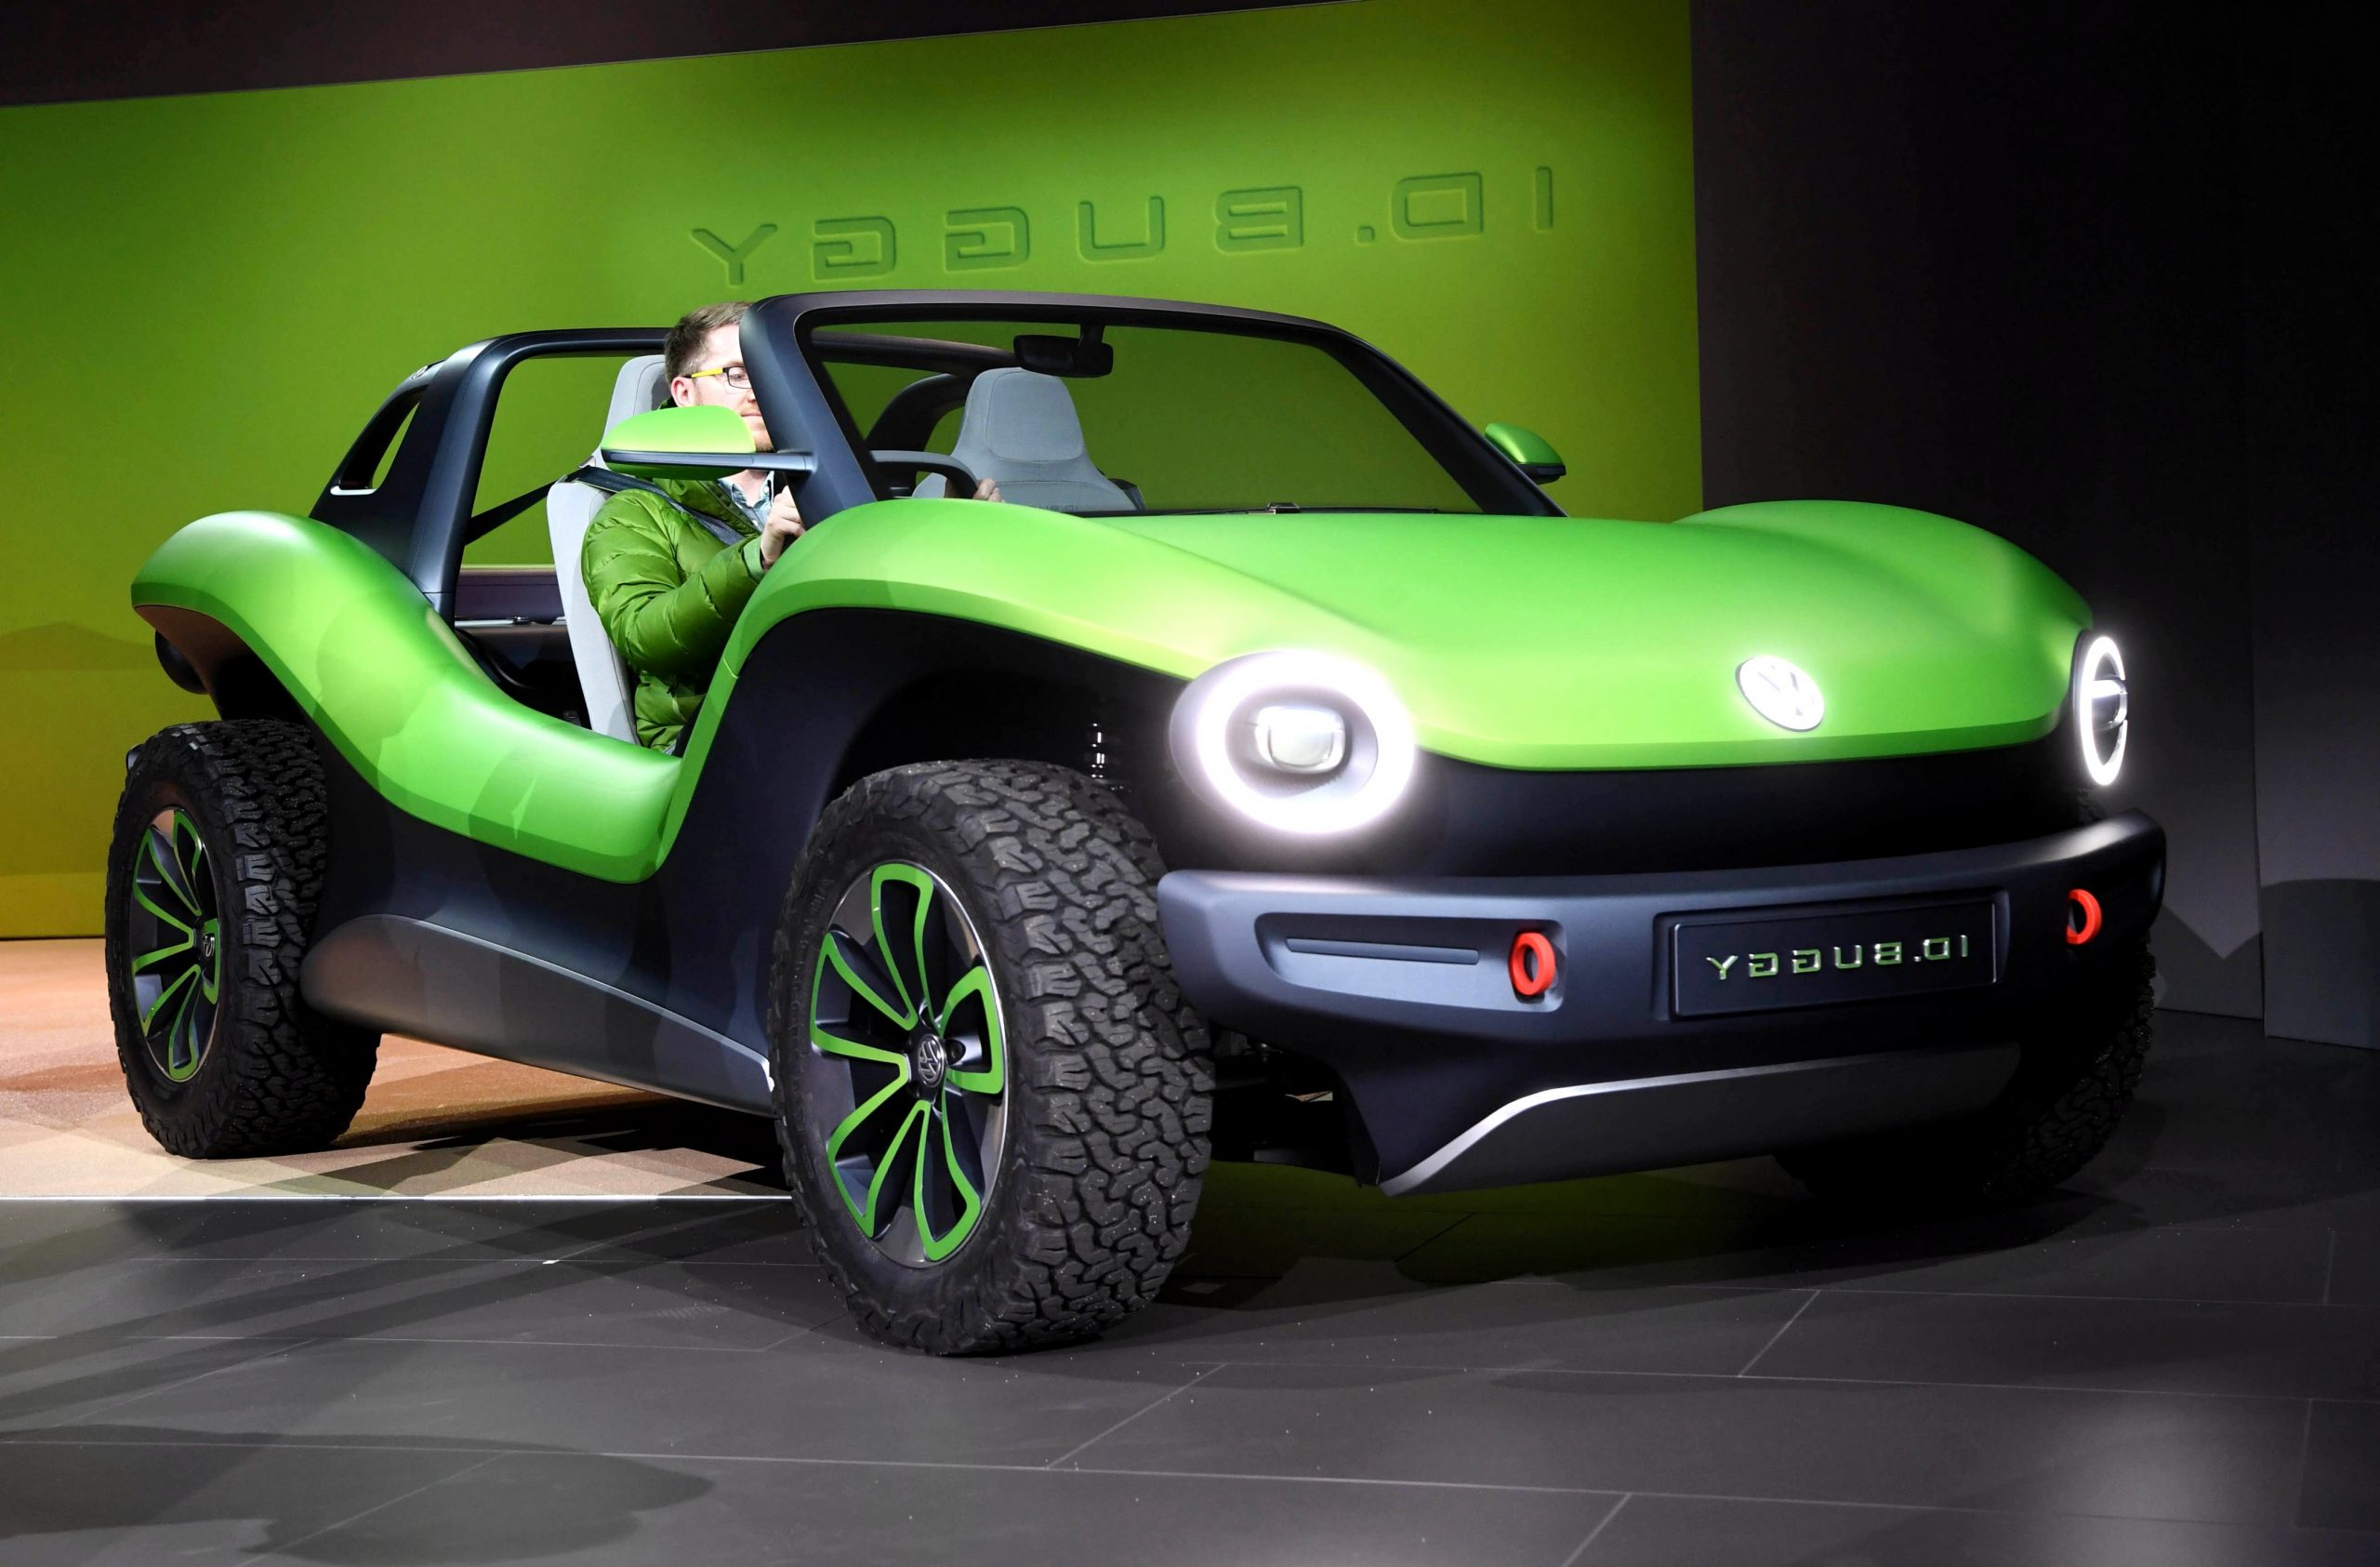 volkswagen dune buggy 2020 Exterior and Interior